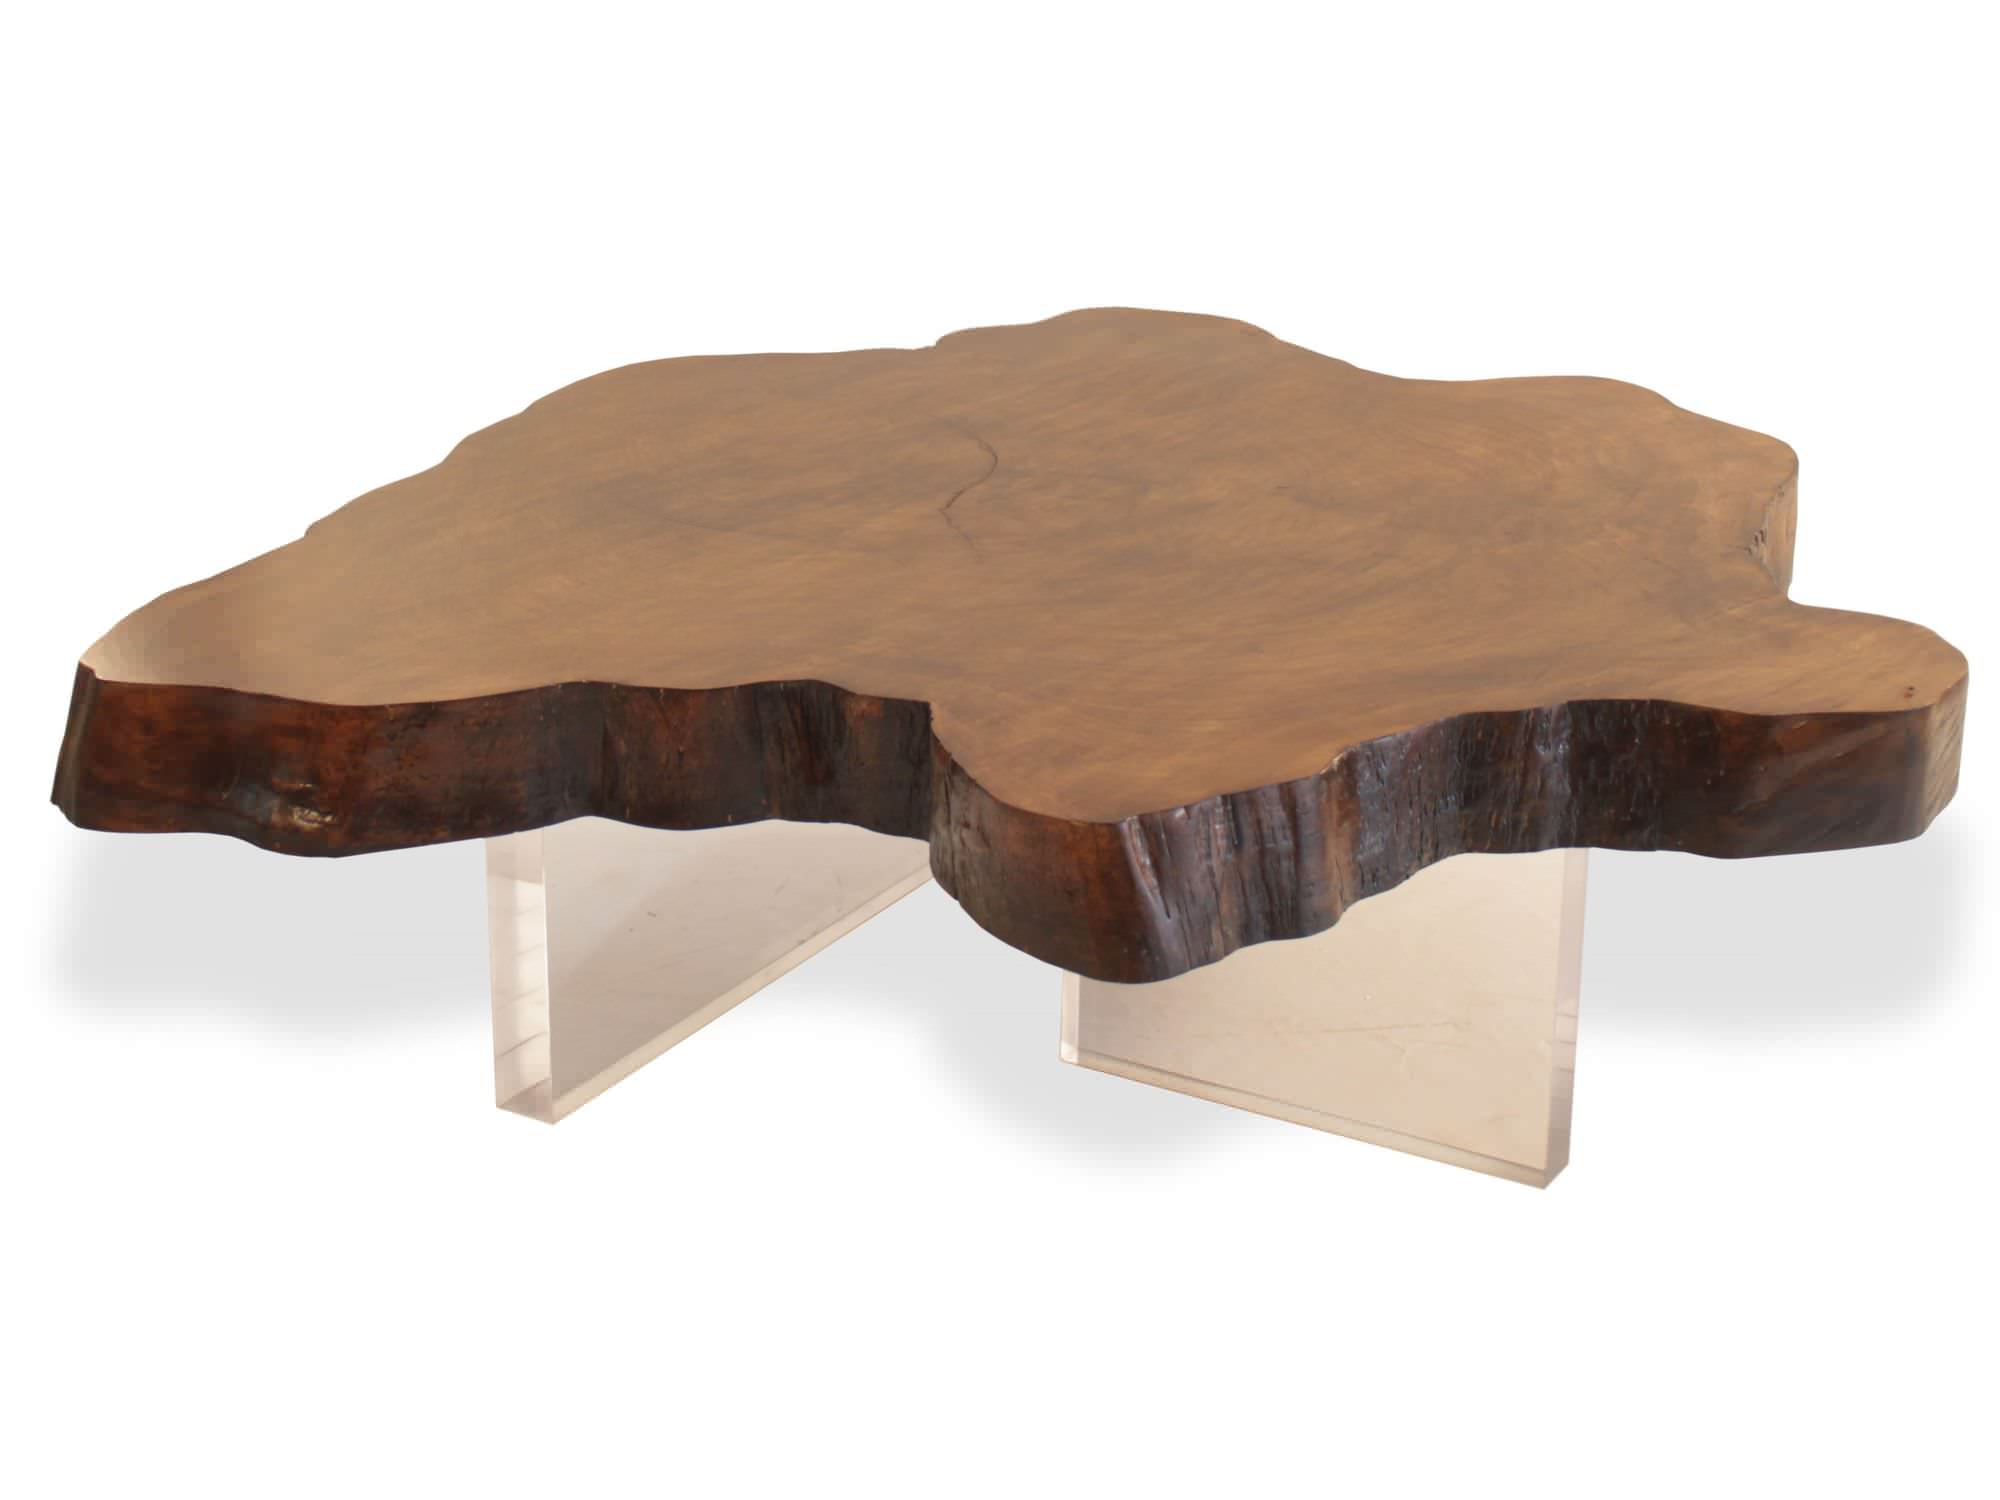 Contemporary coffee table wooden in reclaimed material organic jatoba and acrylic